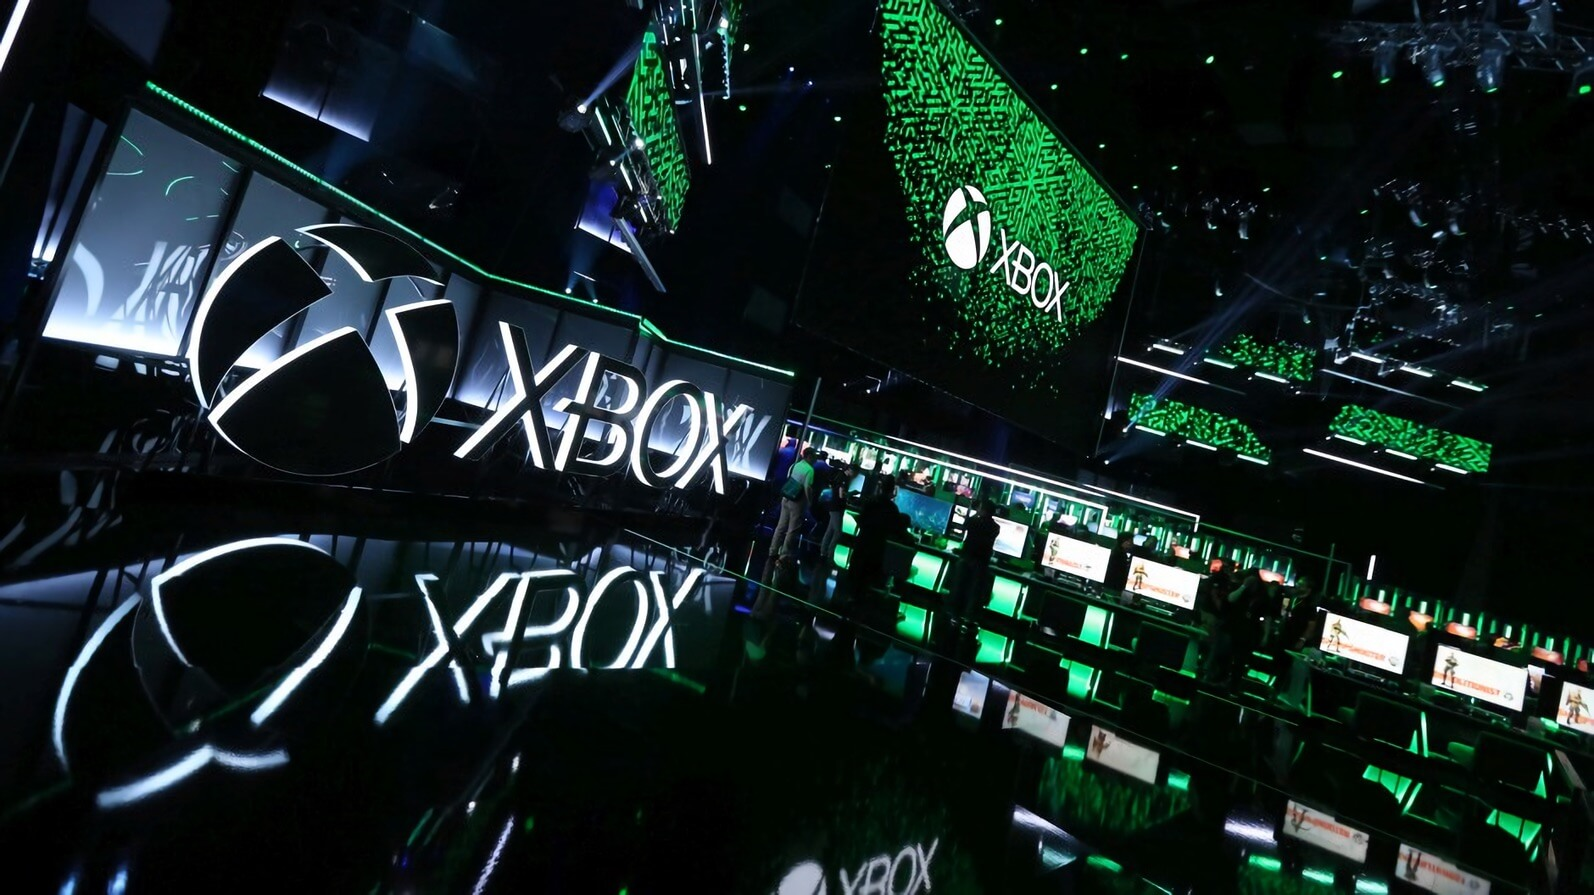 Watch Microsoft's Xbox E3 2019 live stream here